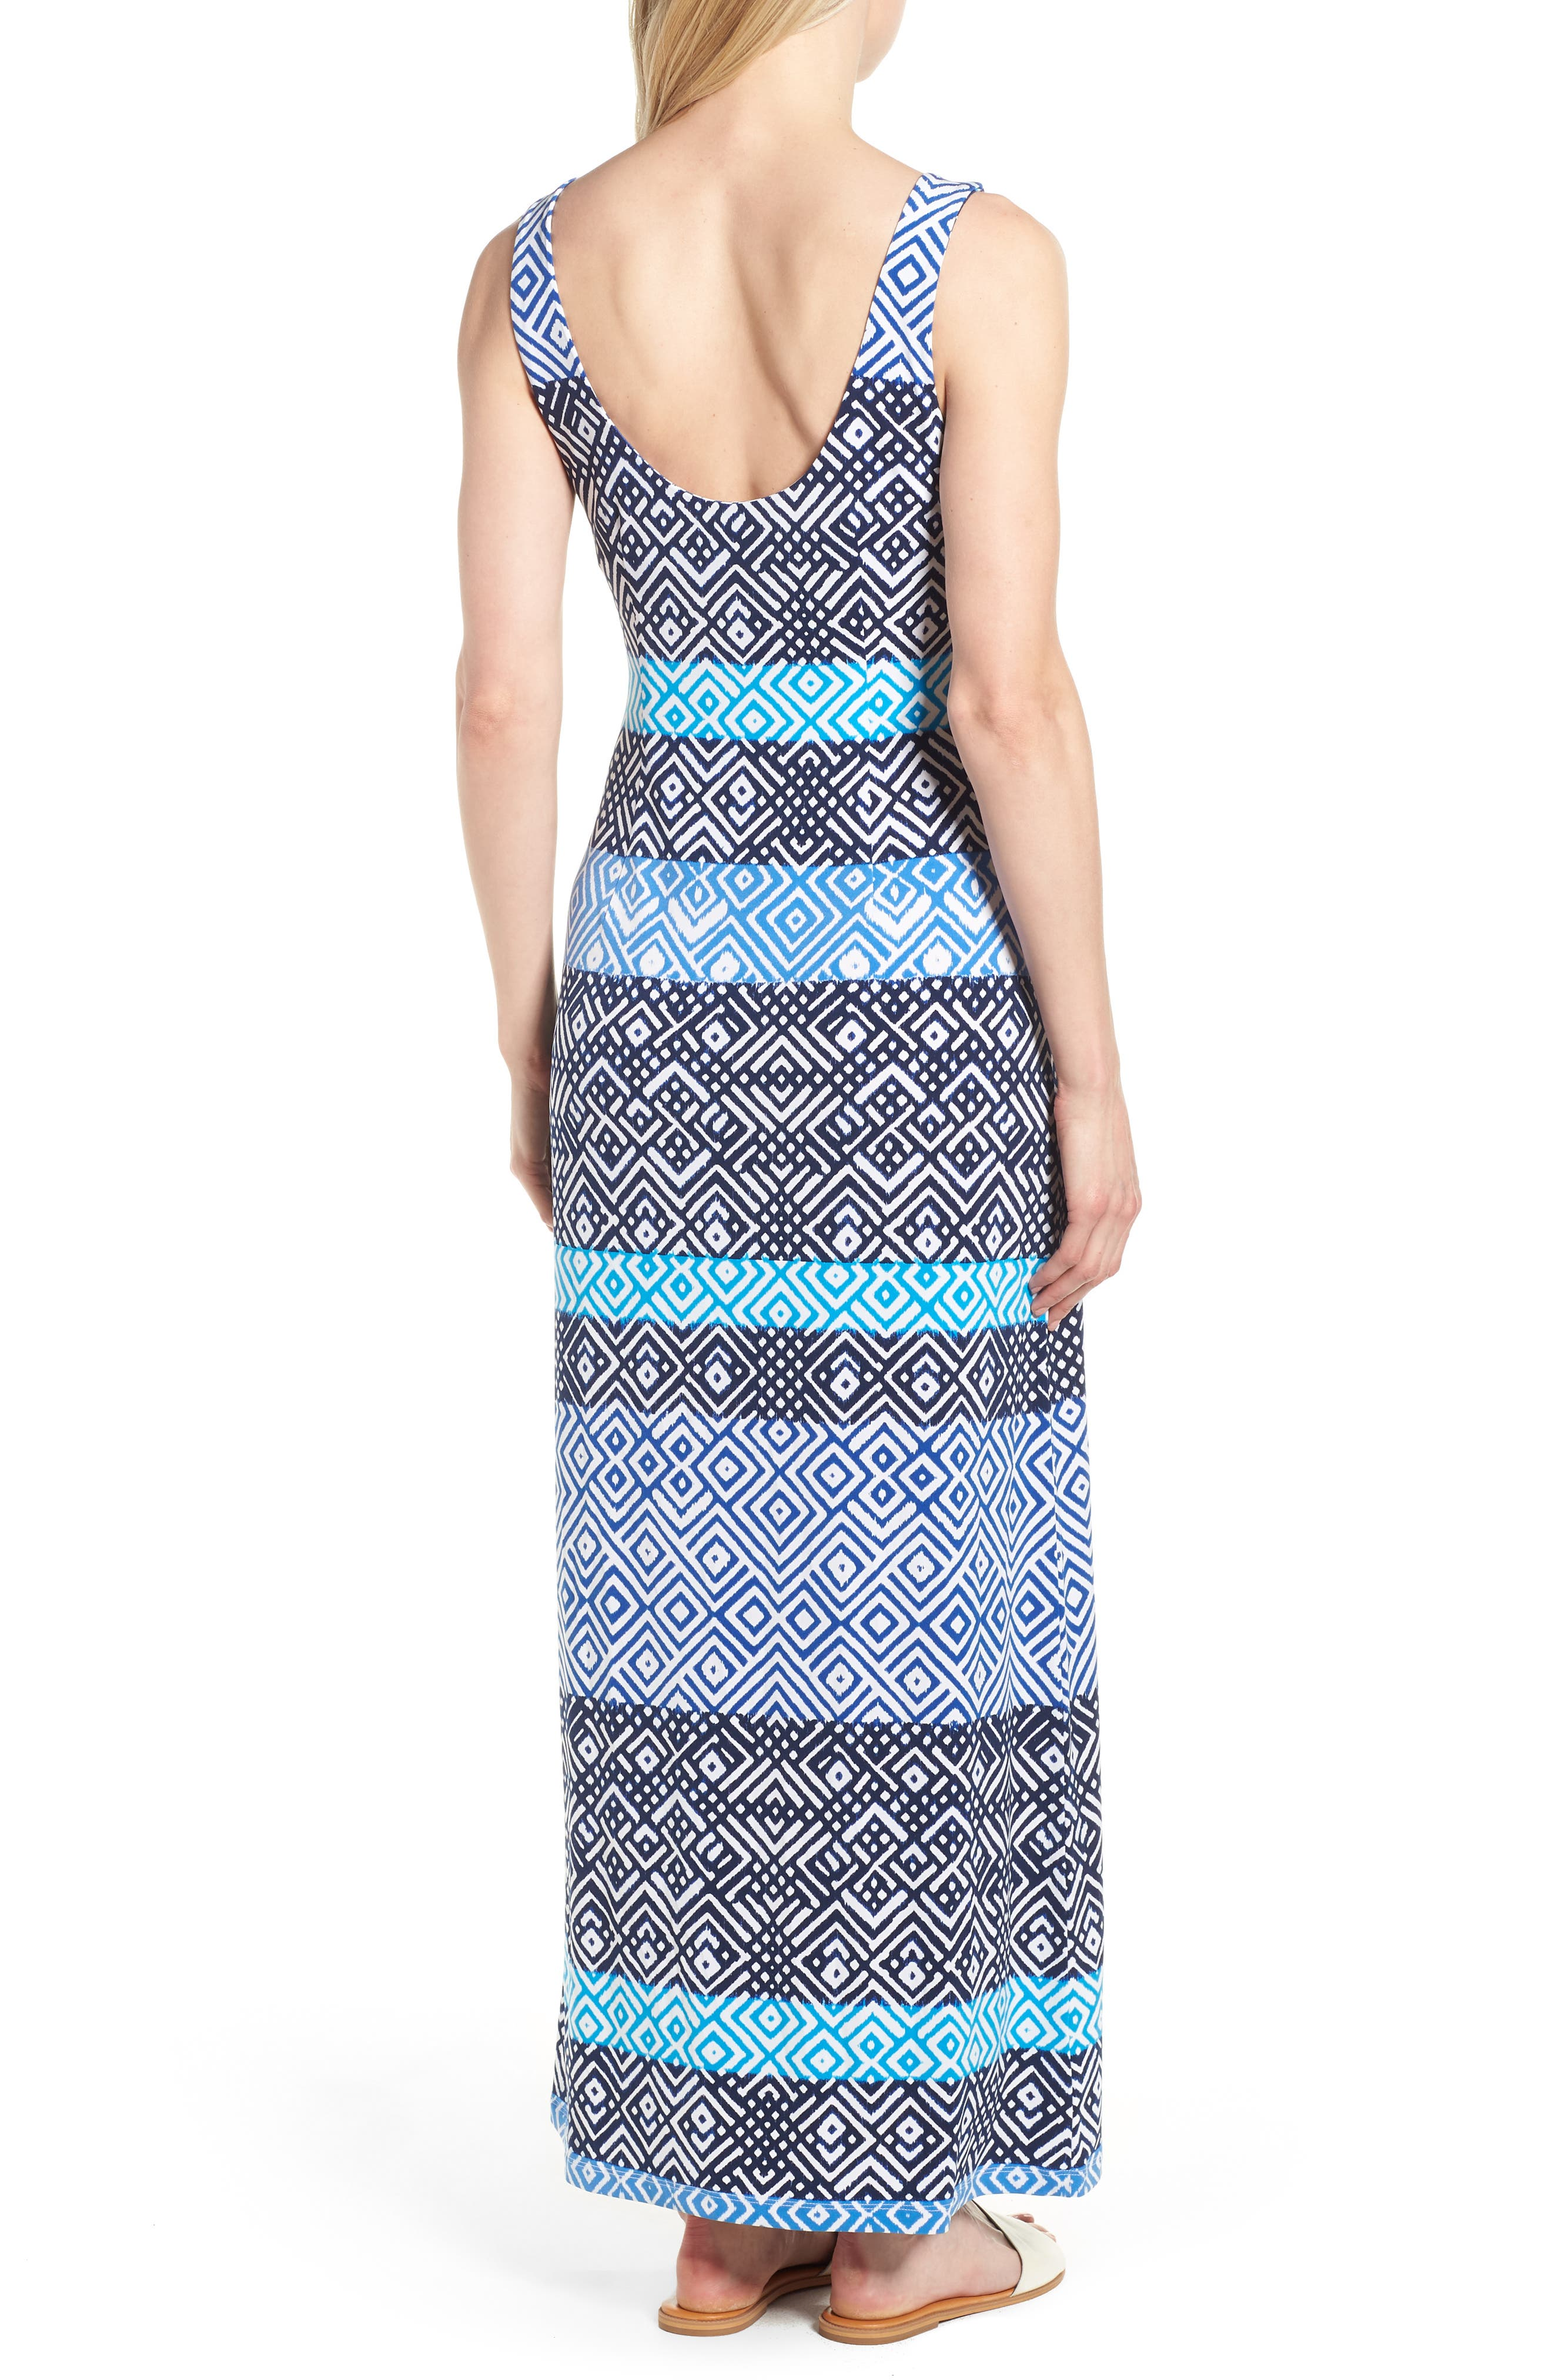 TOMMY BAHAMA,                             Mayan Maze Maxi Dress,                             Alternate thumbnail 2, color,                             OCEAN DEEP